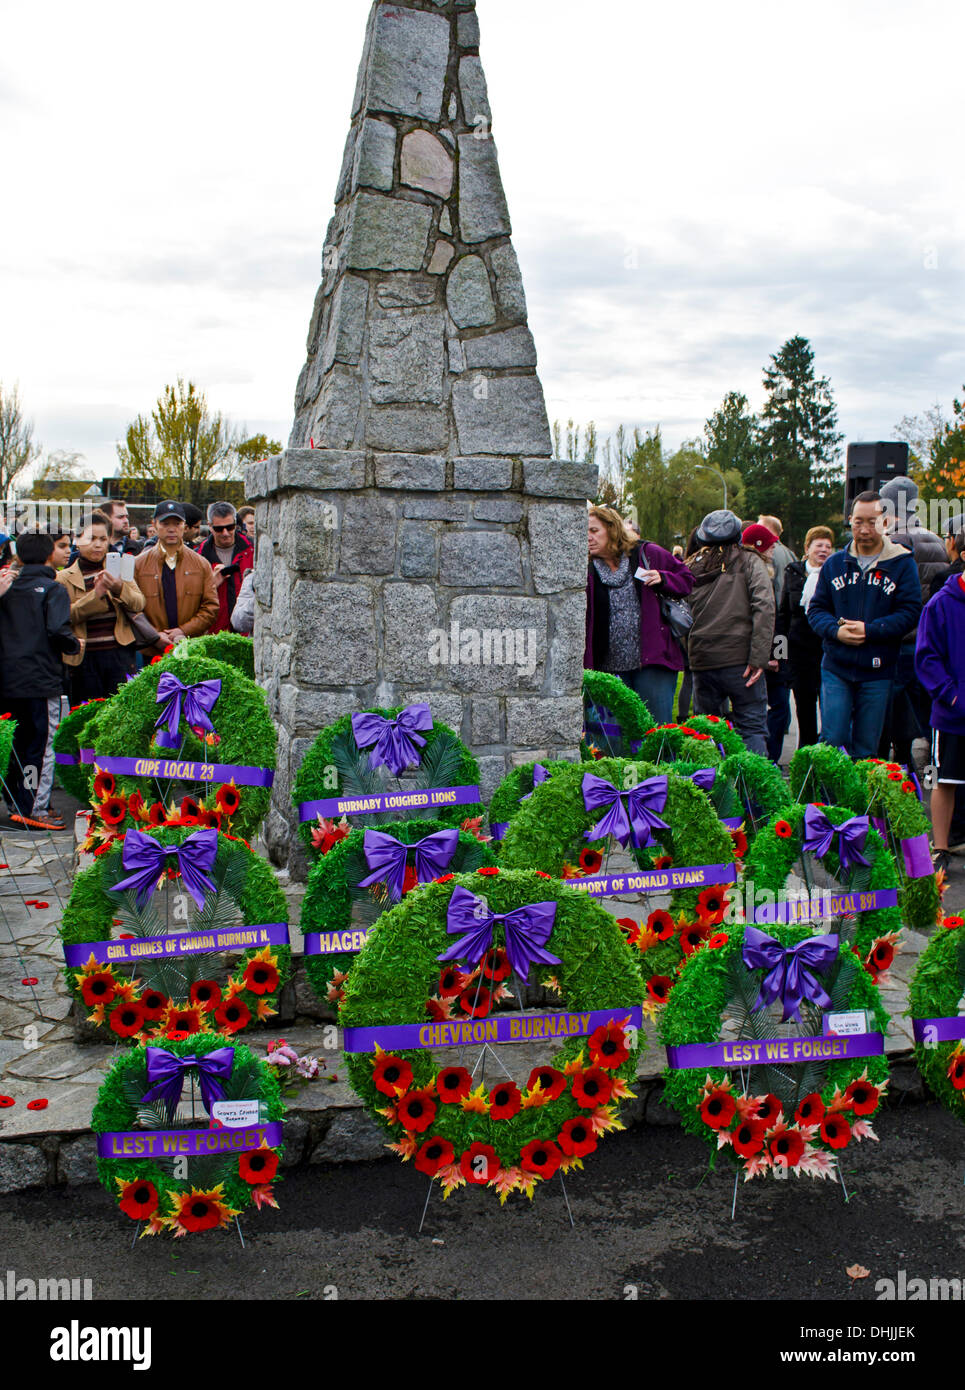 BURNABY, BRITISH COLUMBIA, CANADA – Monday November 11, 2013:  People observing the cenotaph decorated with wreaths and poppies following the Remembrance Day service in Confederation Park, Burnaby, BC. Canada.  Hundreds of people from the community gathered for the annual ceremony, to show respect and thanks to war veterans past and present. - Stock Image